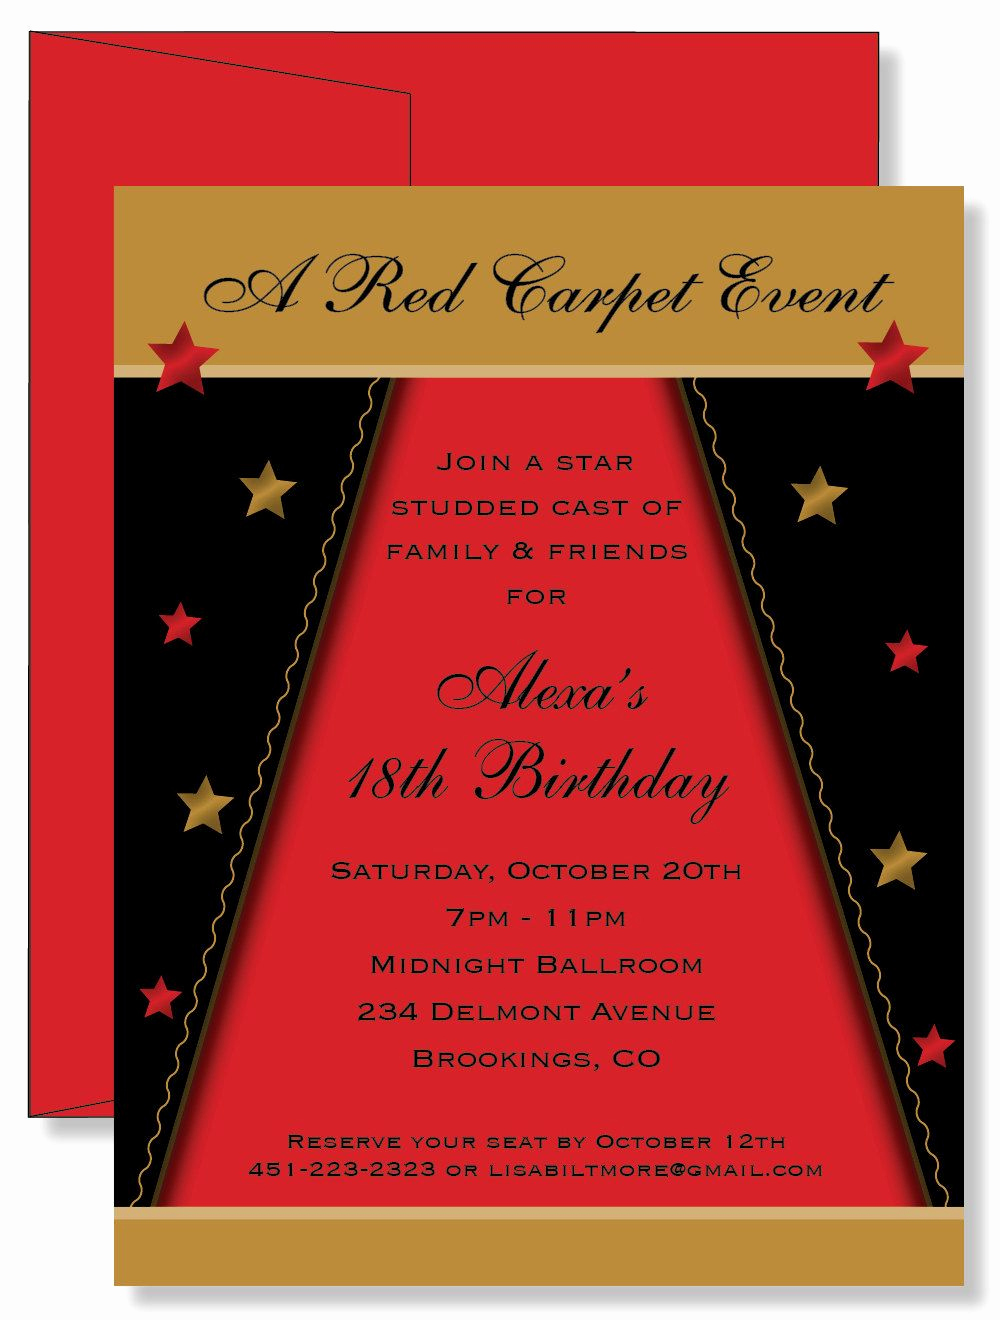 Father Daughter Dance Invitation Wording New Red Carpet Invitations – Invitation Samples 2014